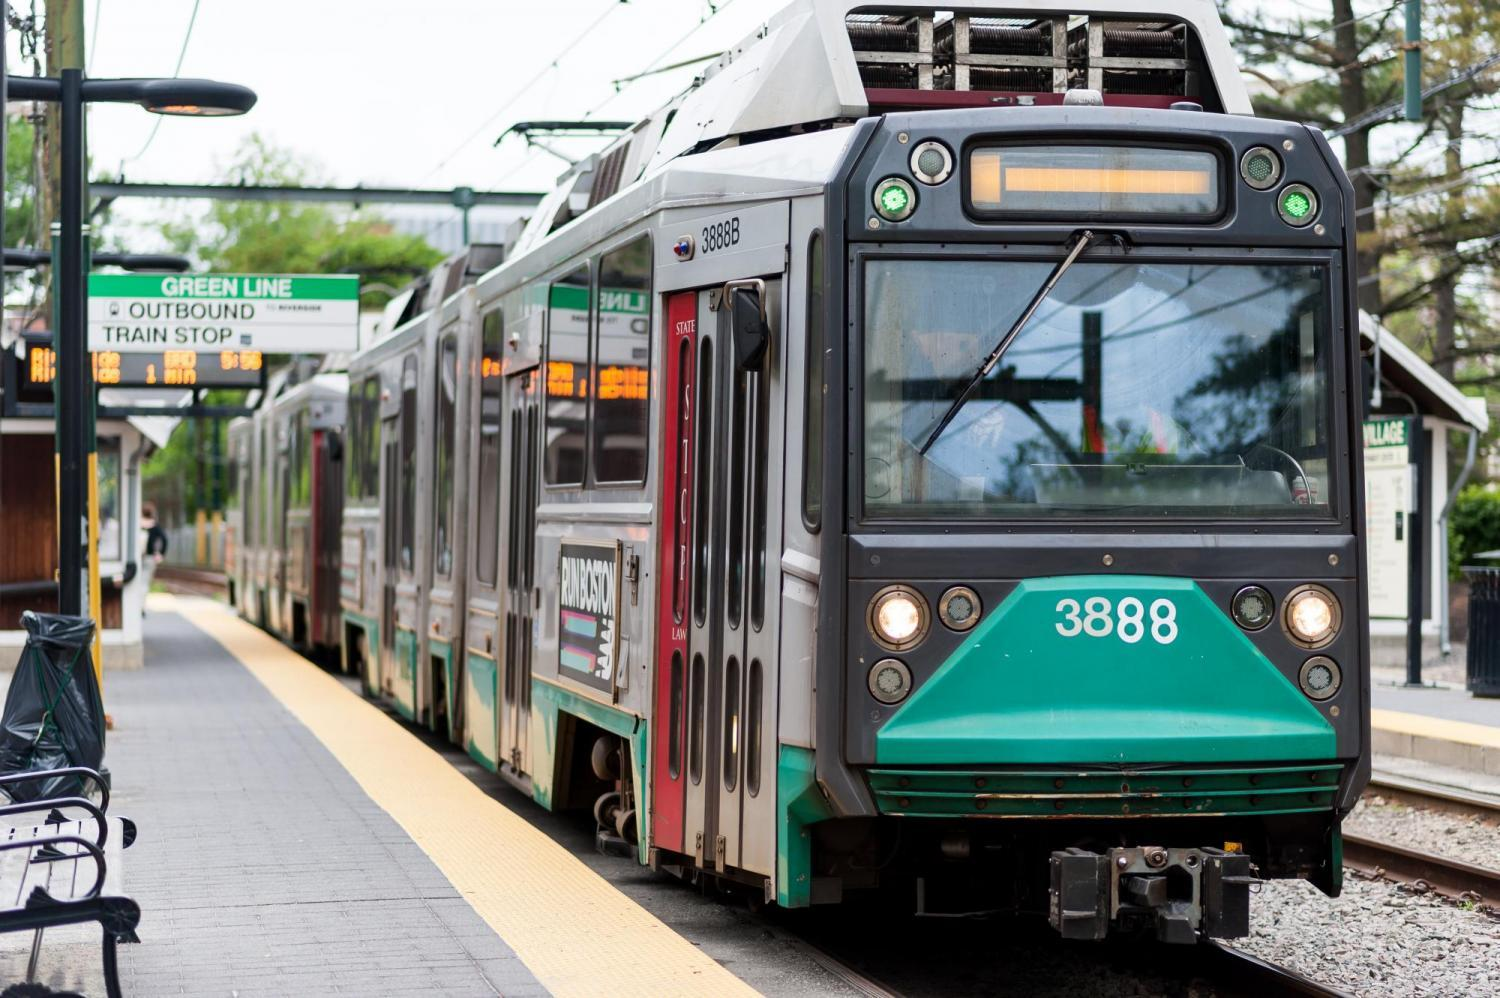 A Green Line train pulls into a station